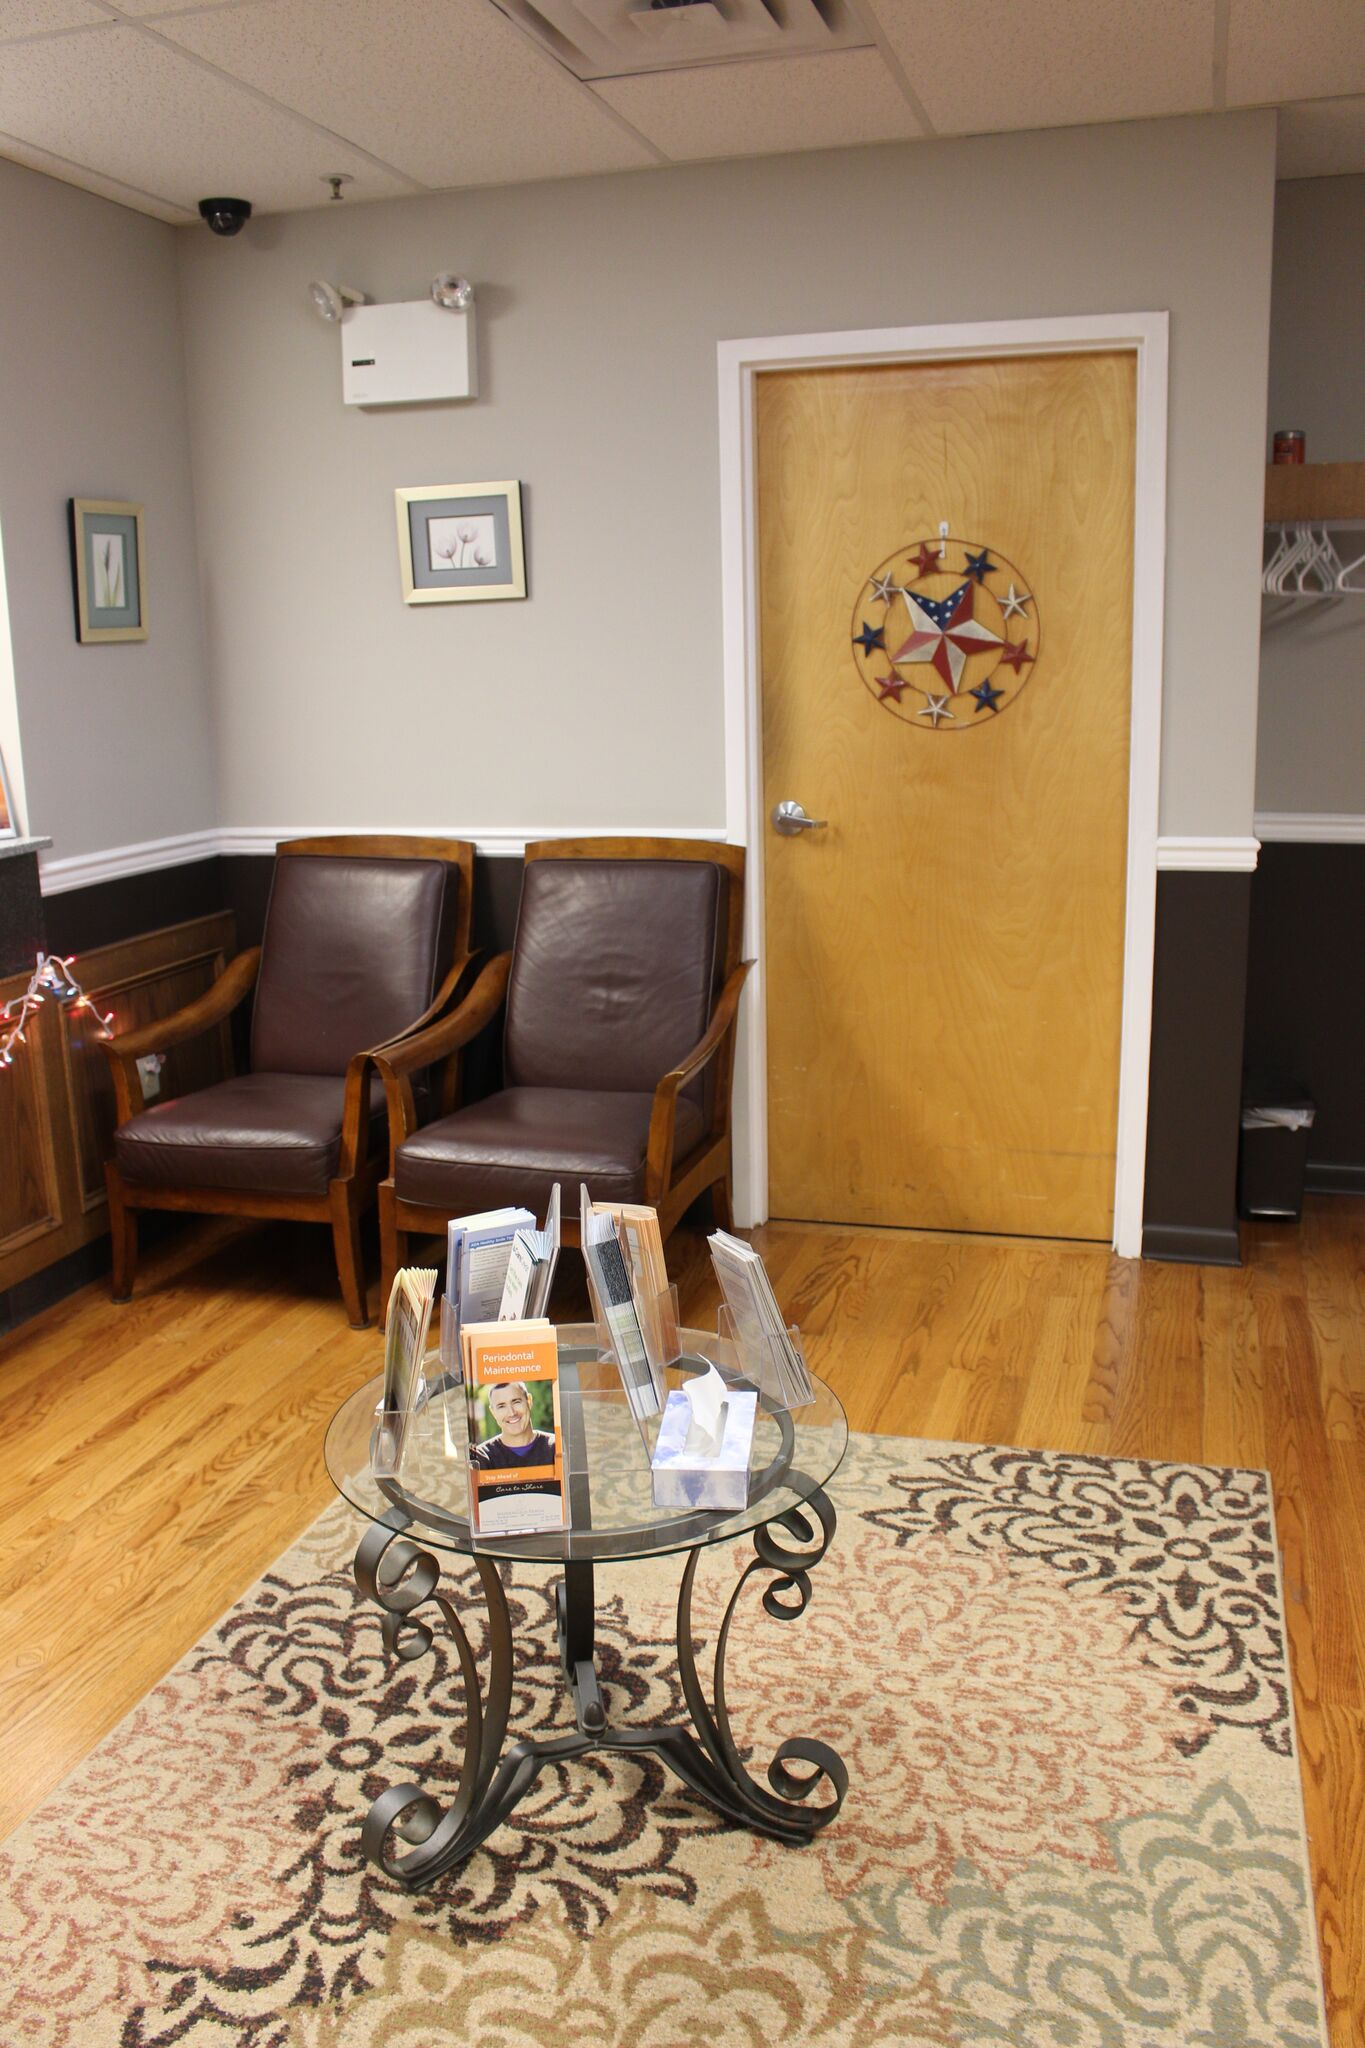 Have a Seat at Haddonfield Dental in Cherry Hill